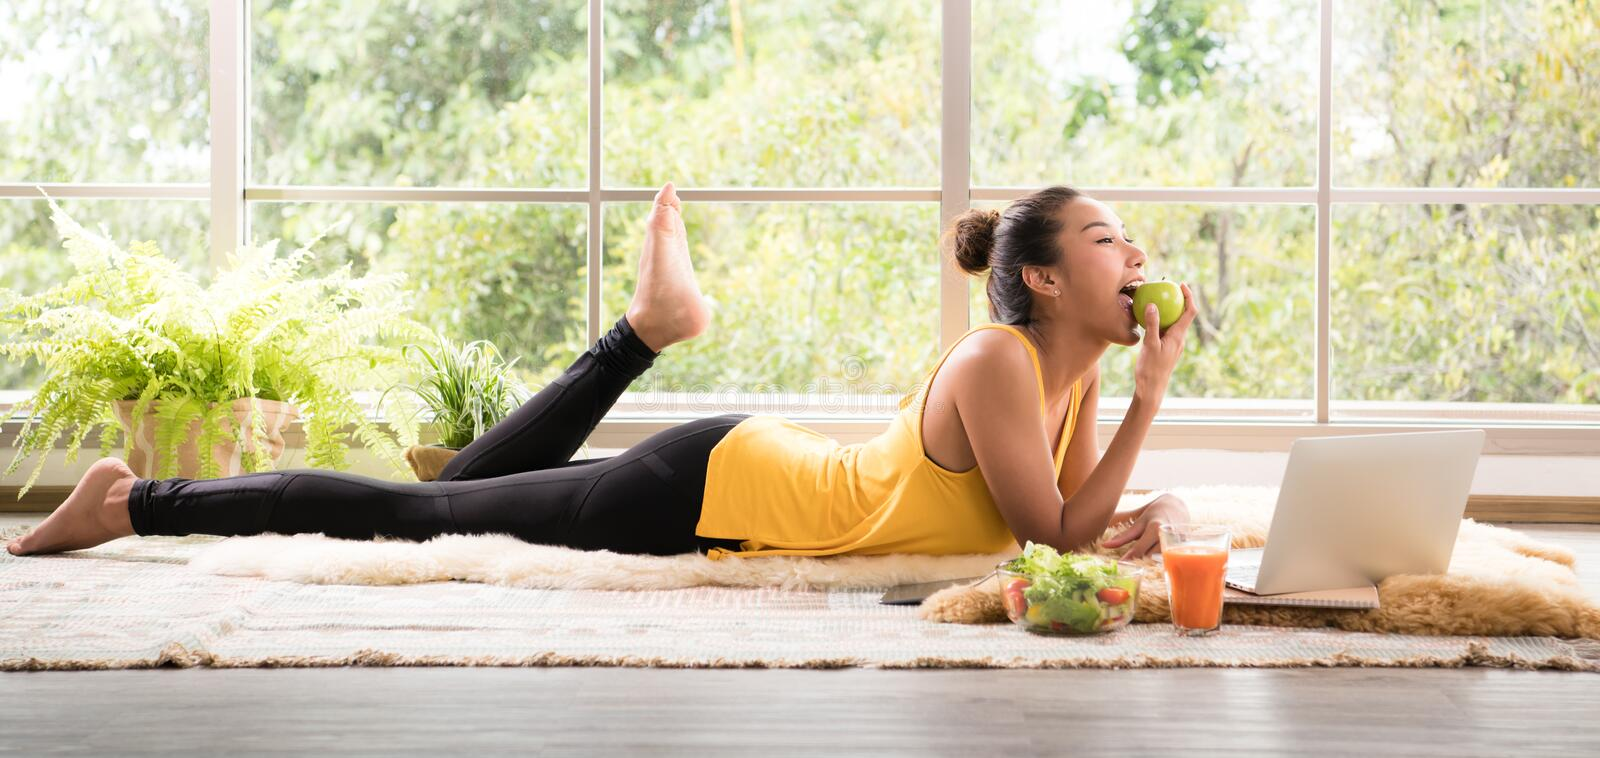 Healthy Asian woman lying on the floor eating salad looking relaxed and comfortable stock images